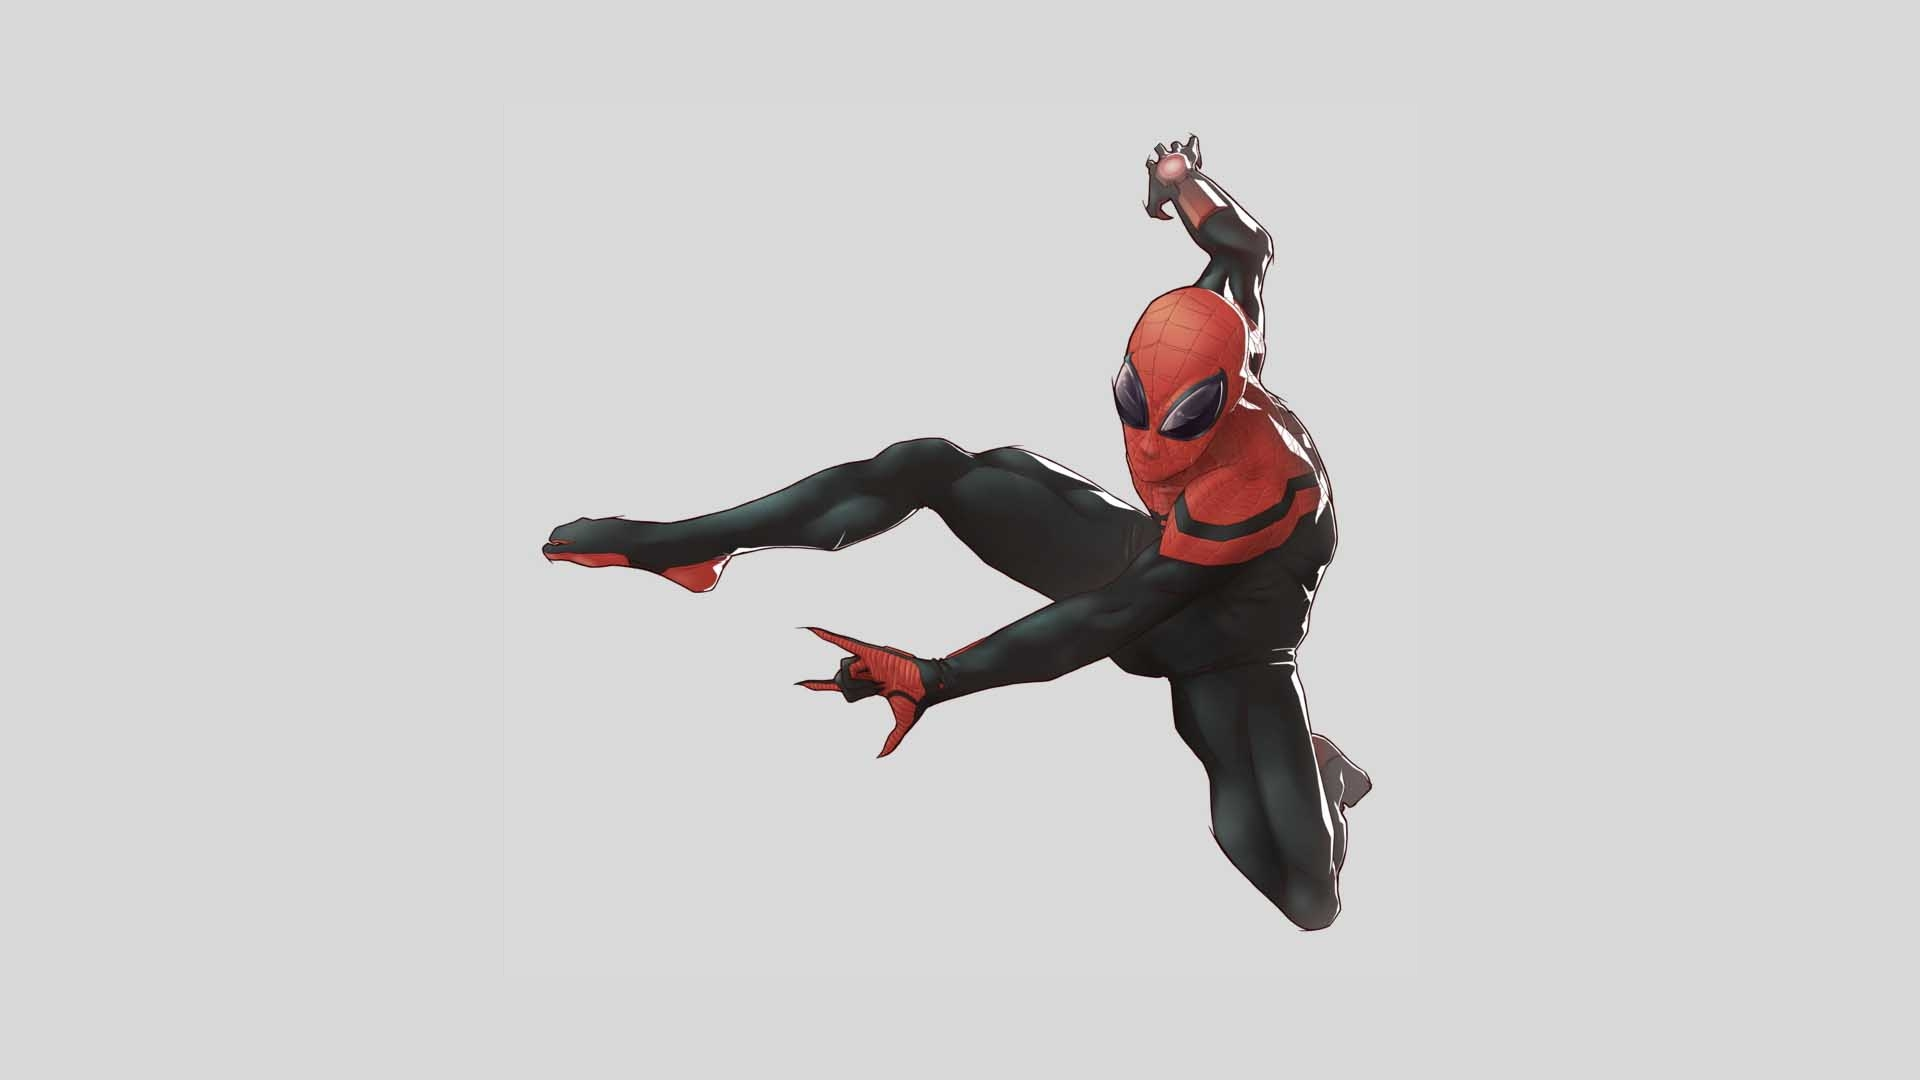 Superman Hd Wallpaper For Iphone 5 Superior Spider Man Full Hd Wallpaper And Background Image